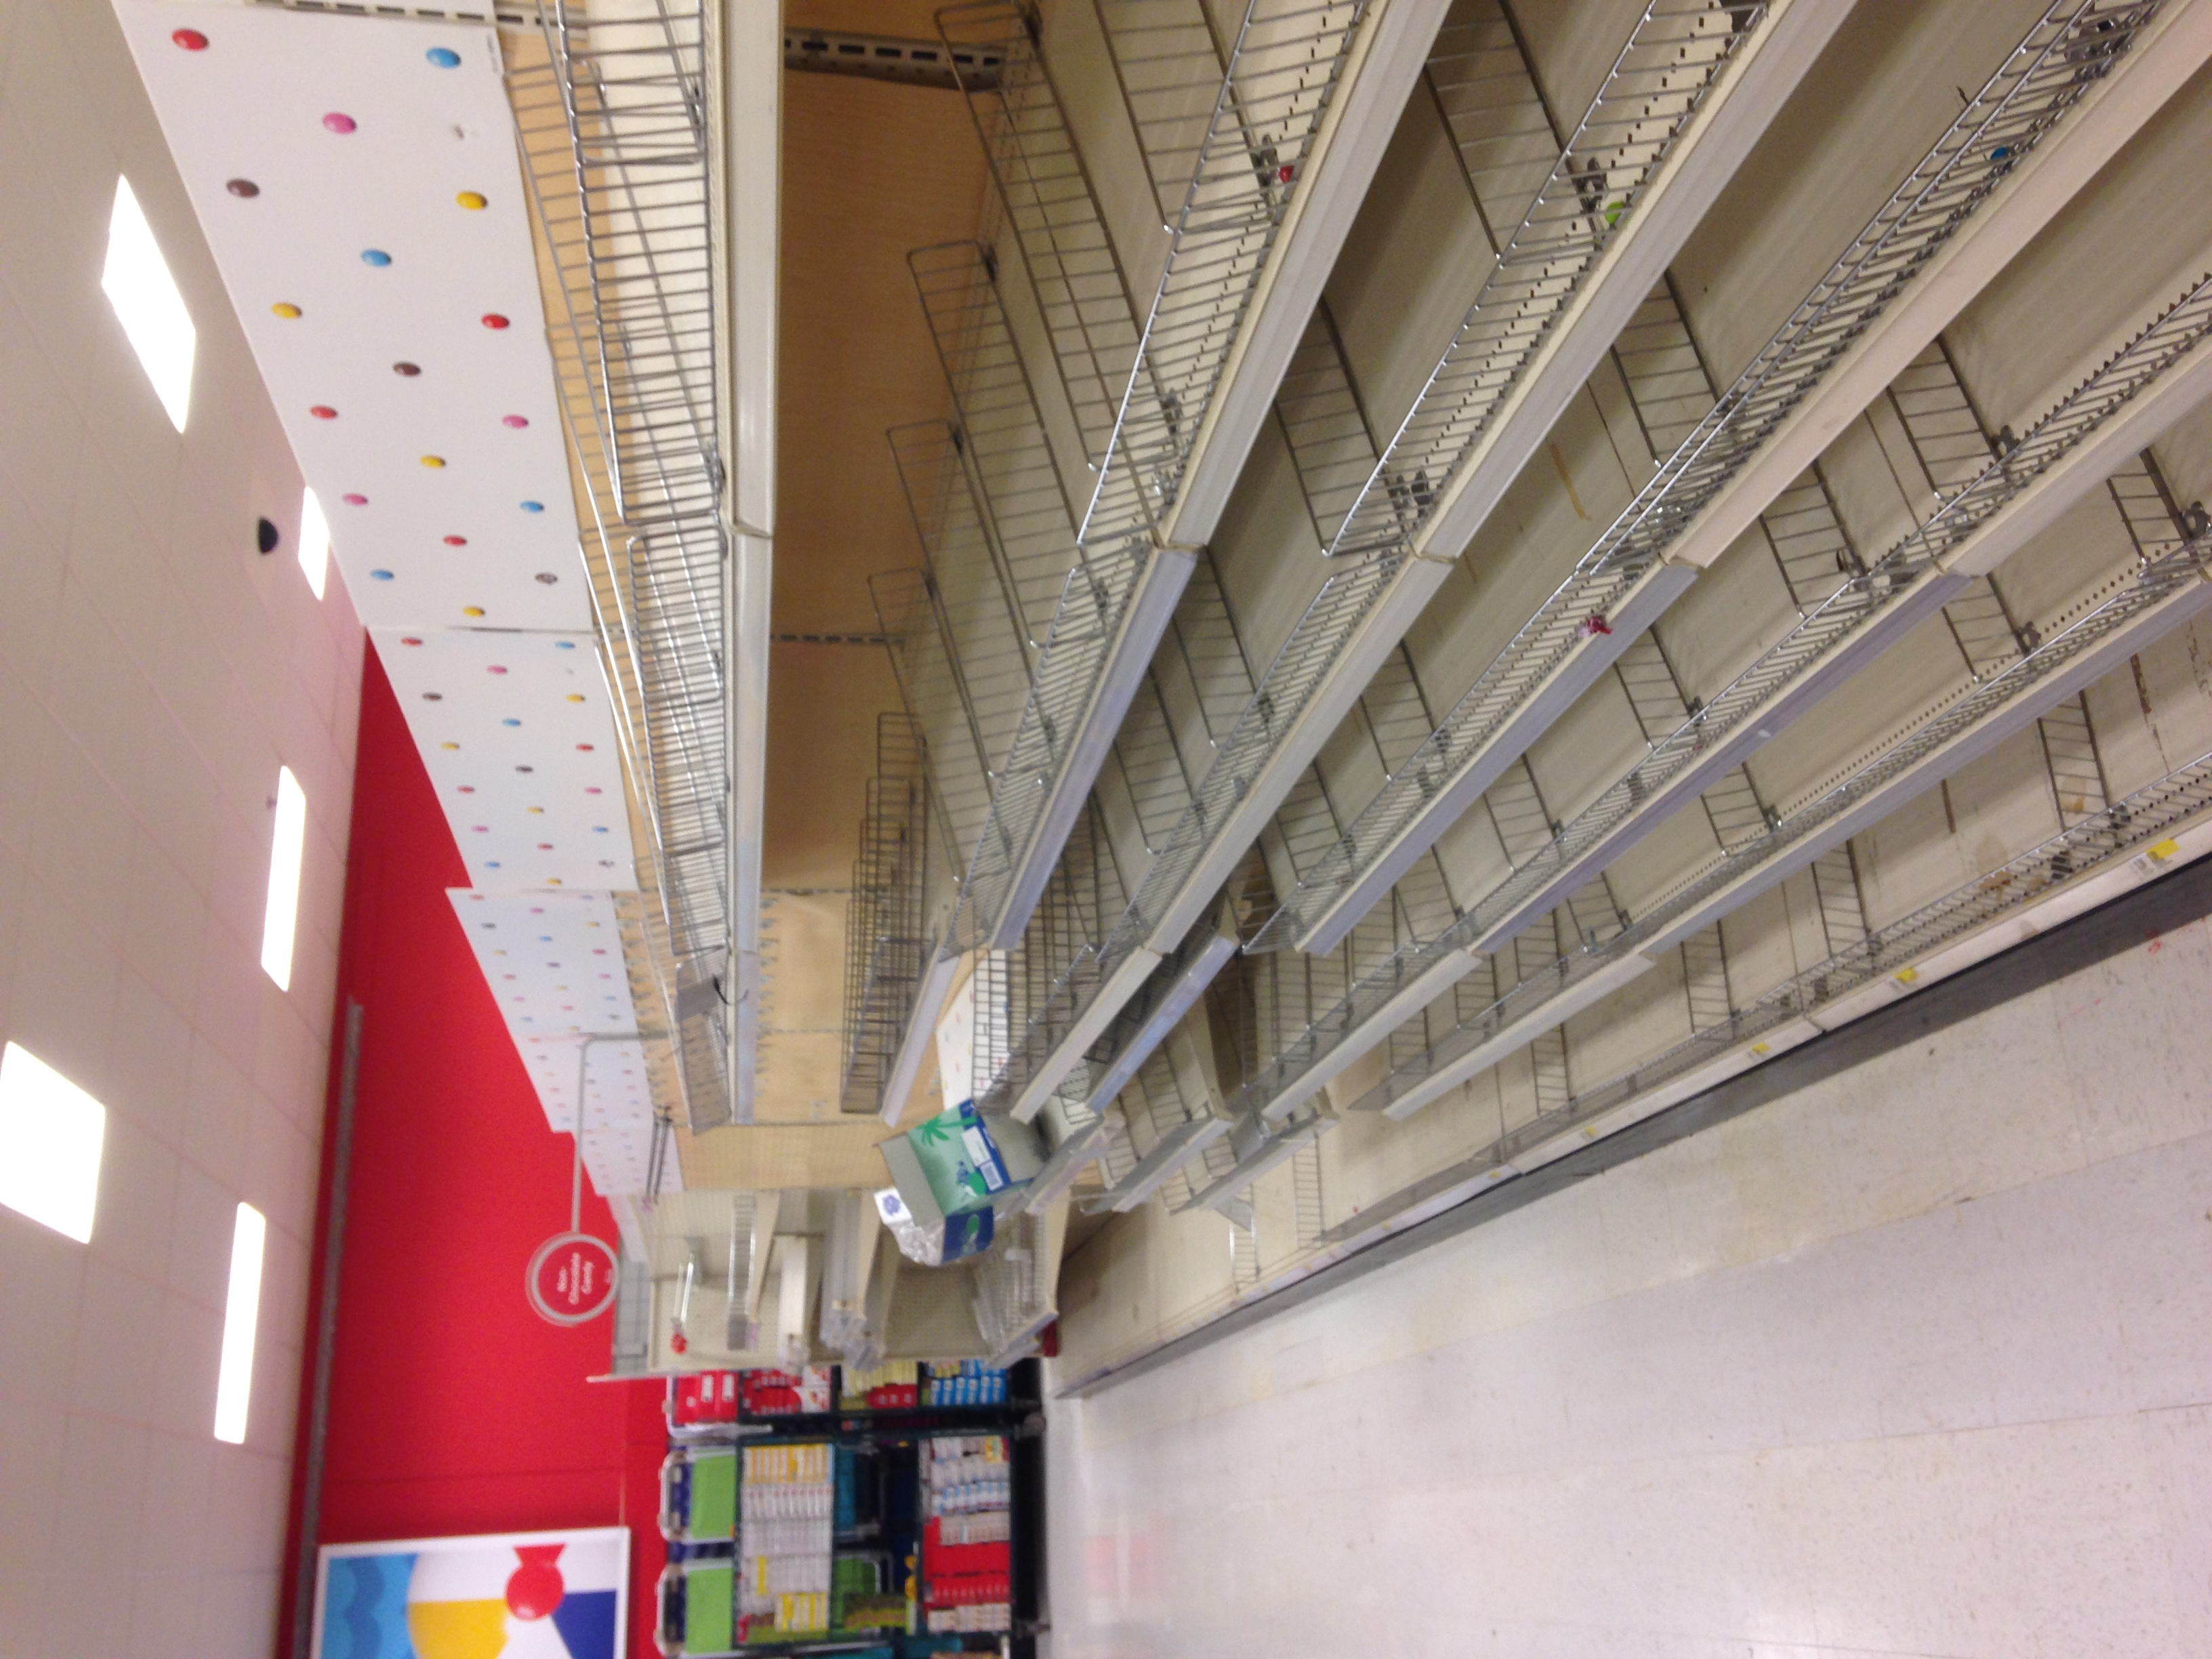 Big empty aisle. I wonder whats moving into it.